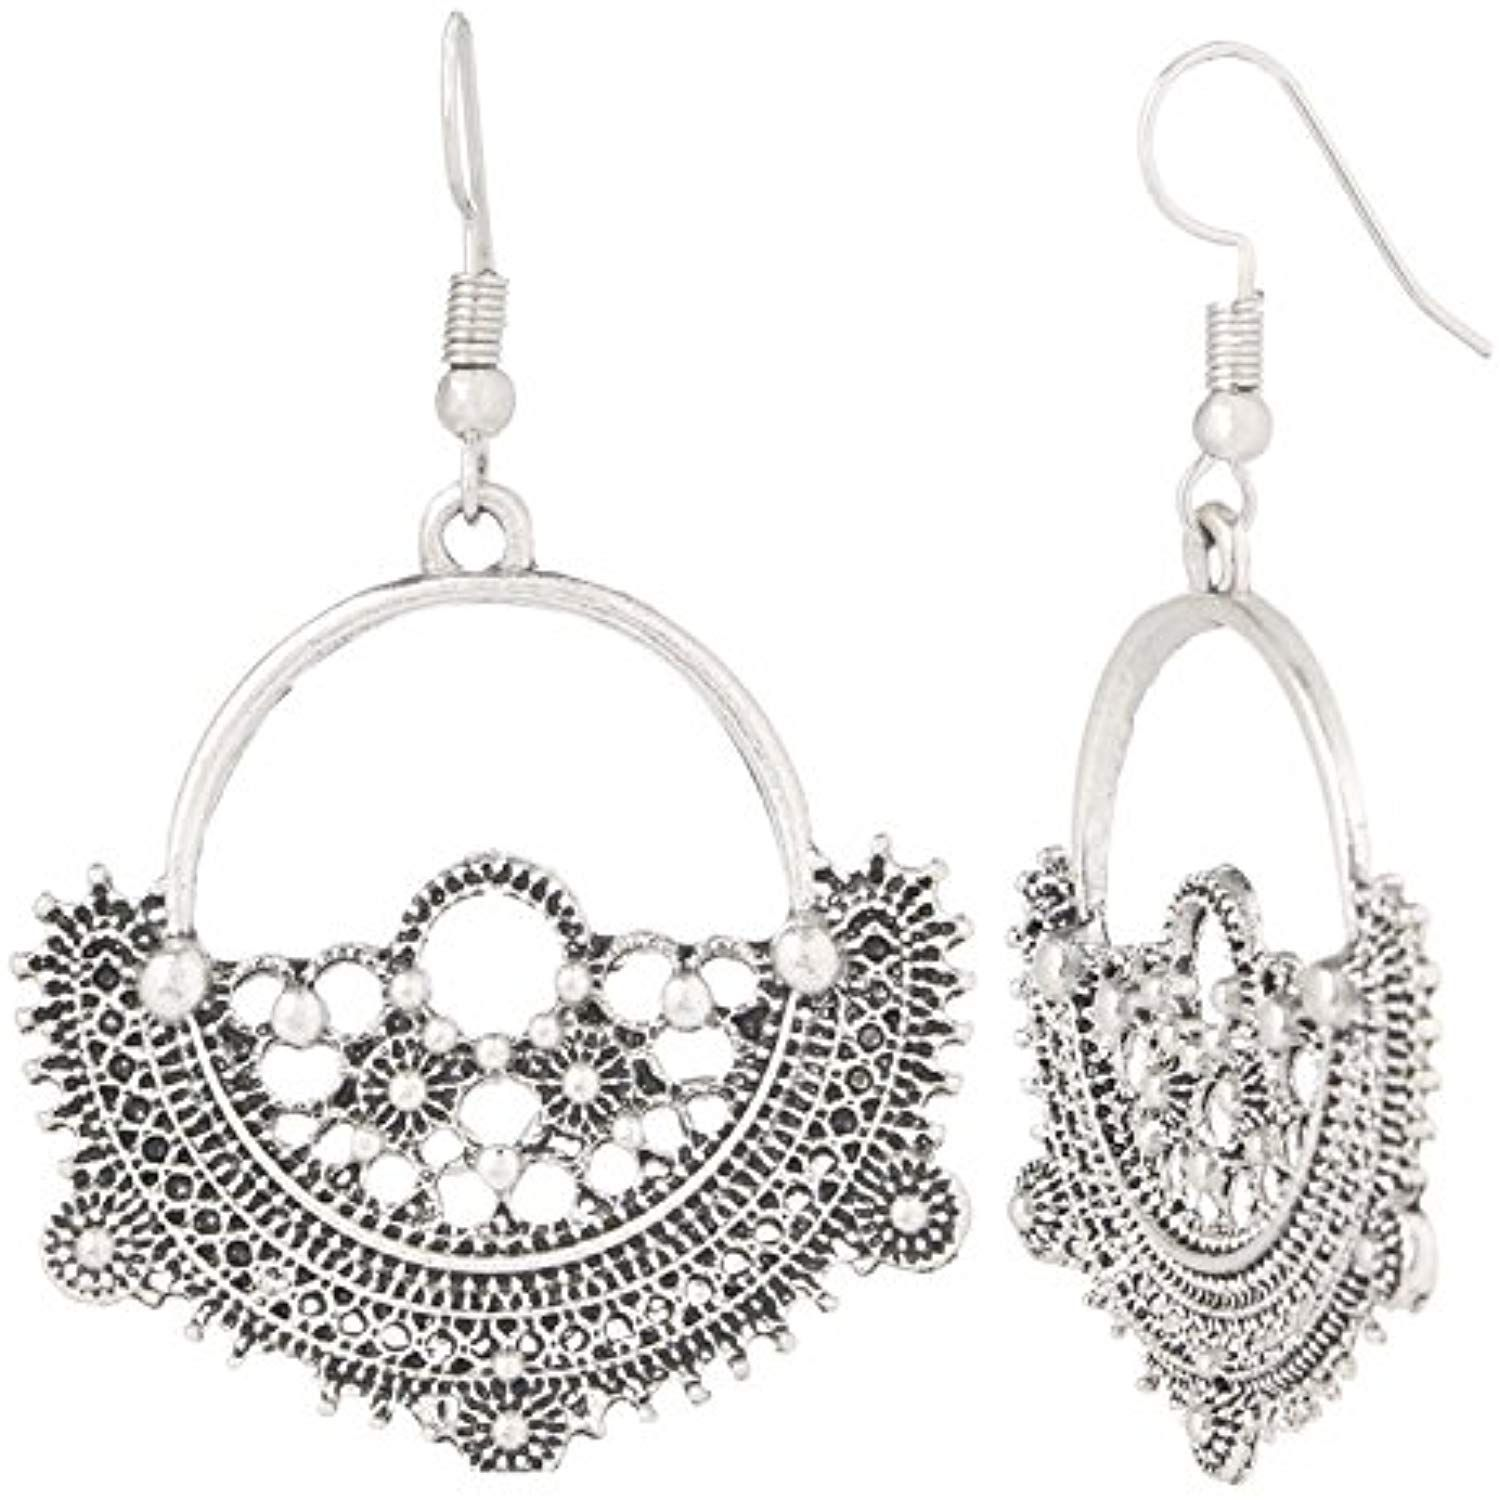 f8ac0e947 Indian Vintage Retro Ethnic Dangle Gypsy Oxidized Silver Tone Boho Chandbali  Earrings for Girls and Women Love Gift *** You can get additional details  at ...